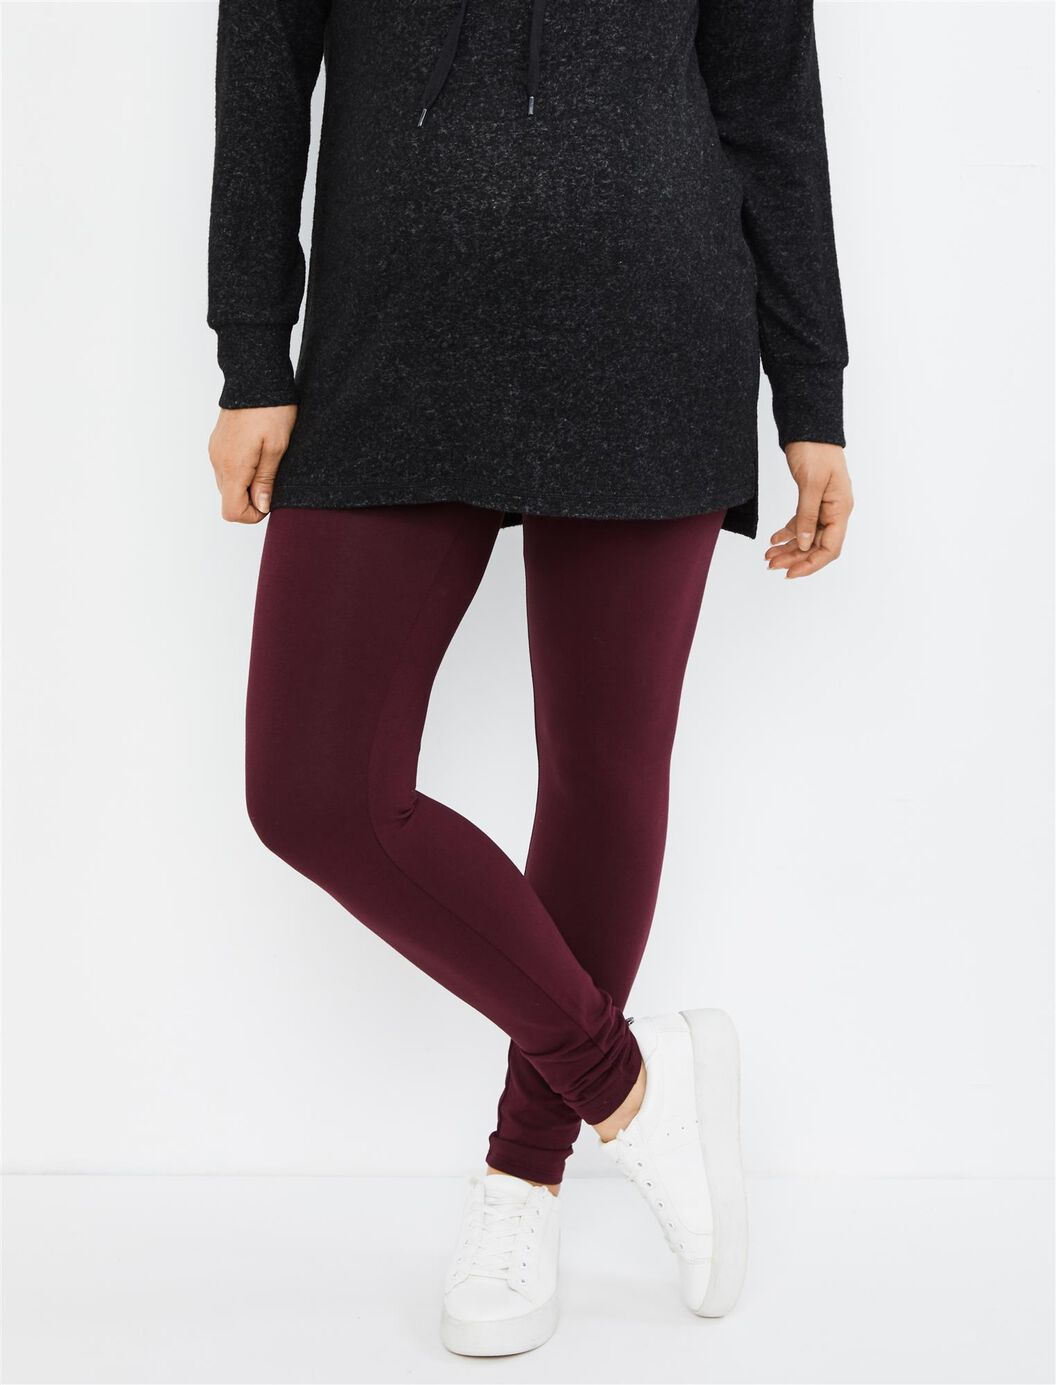 Secret Fit Belly Maternity Leggings- Solid at Motherhood Maternity in Victor, NY | Tuggl